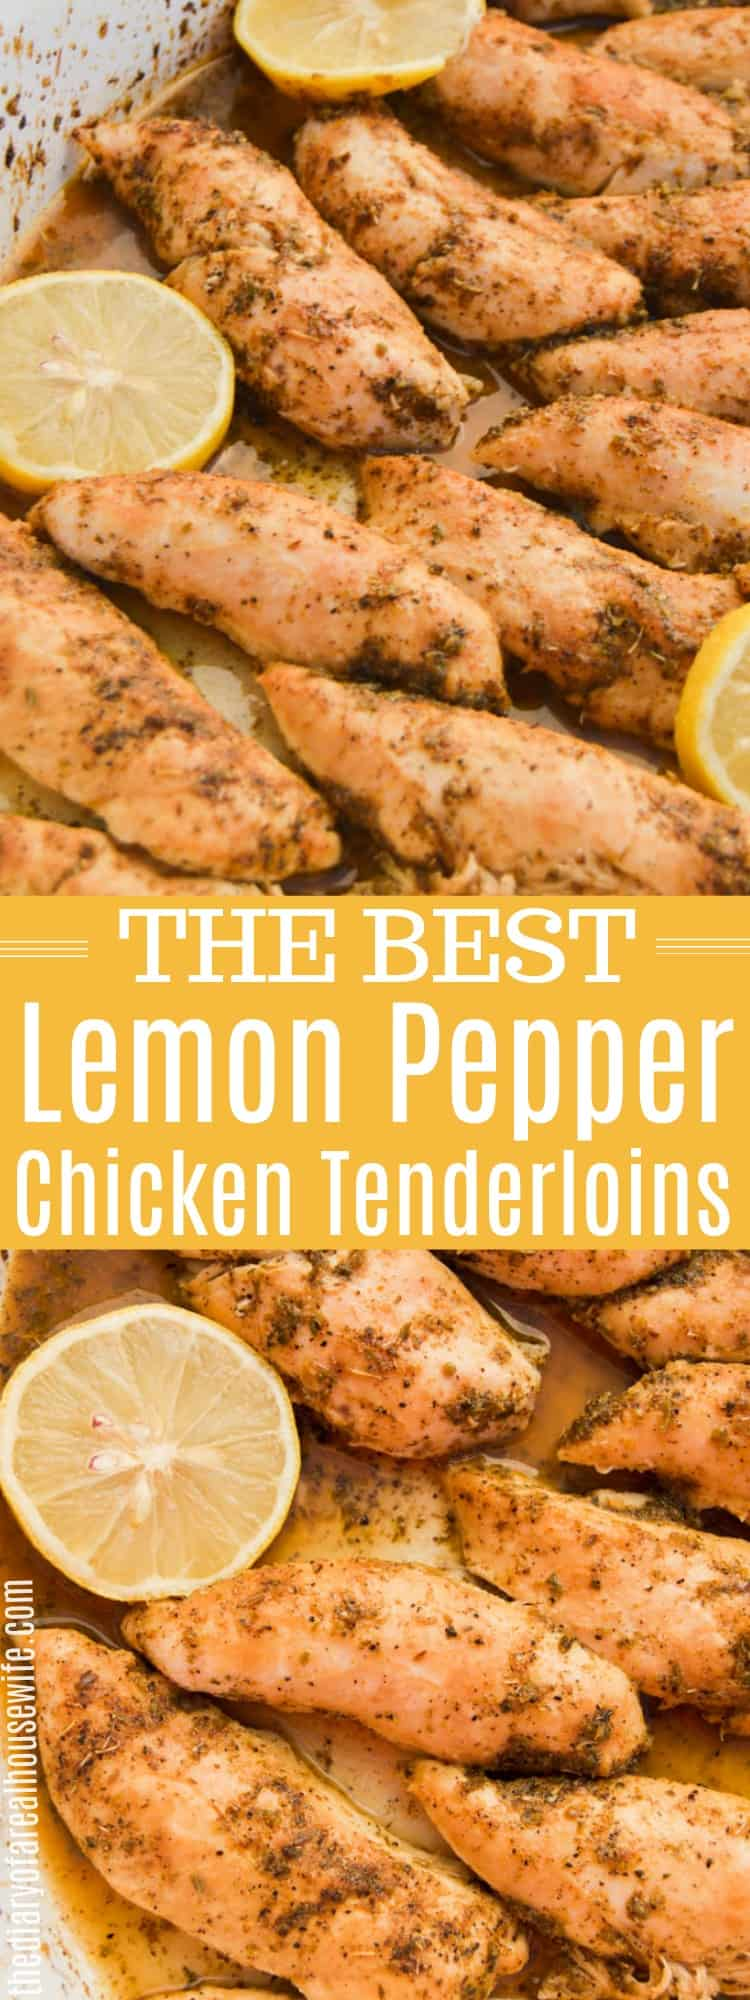 Lemon Pepper Chicken Tenderloins